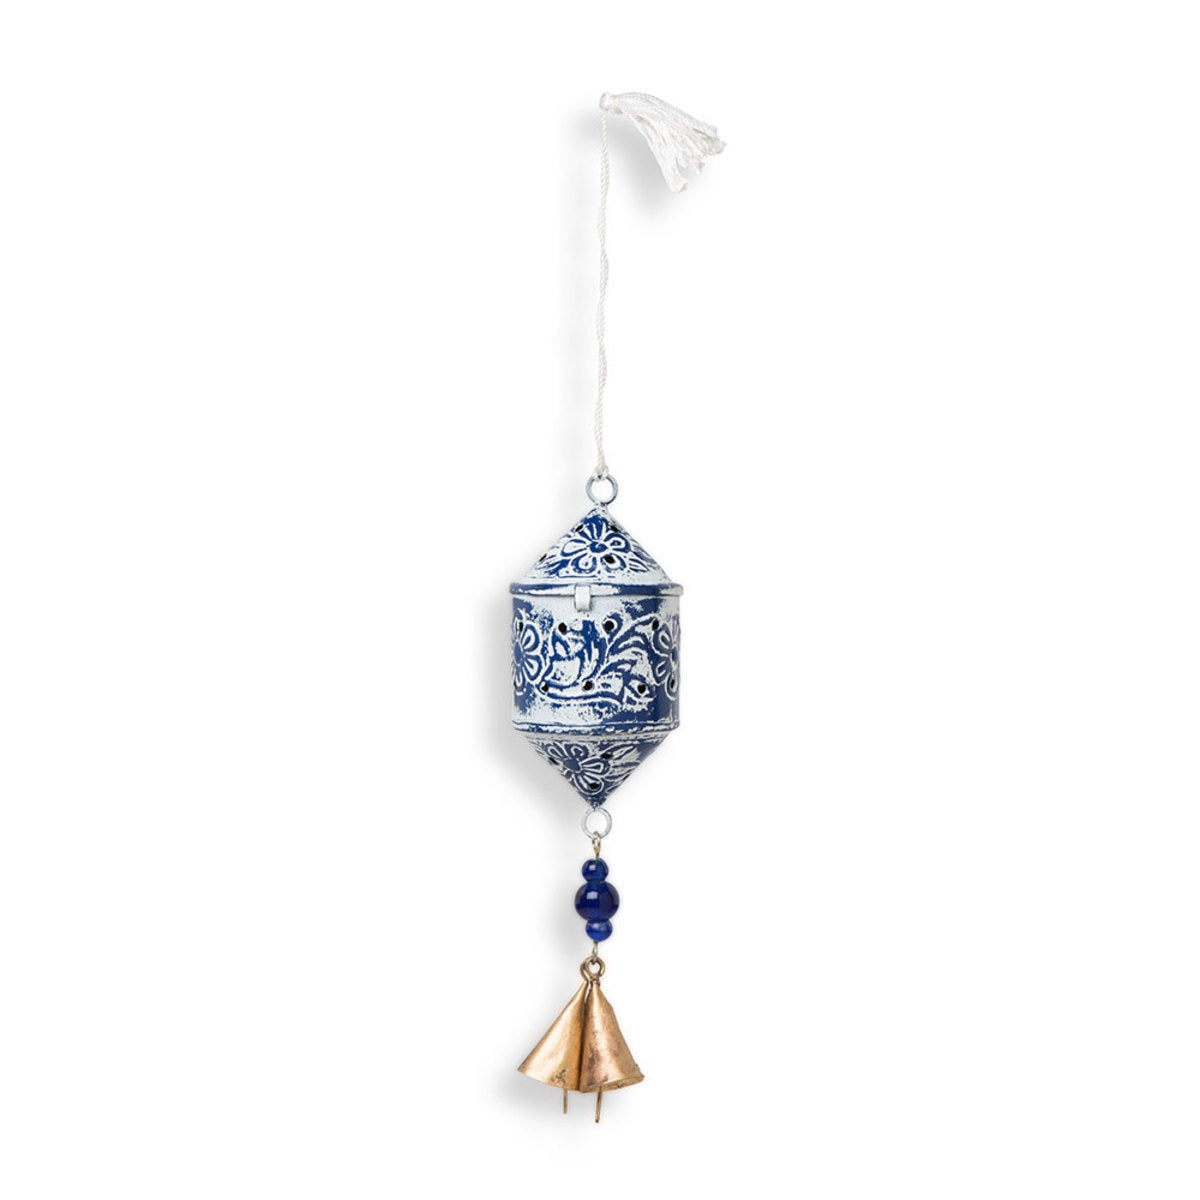 Tasseled Indian Lantern Ornament, Set of 3 Blue/White - Blue and White